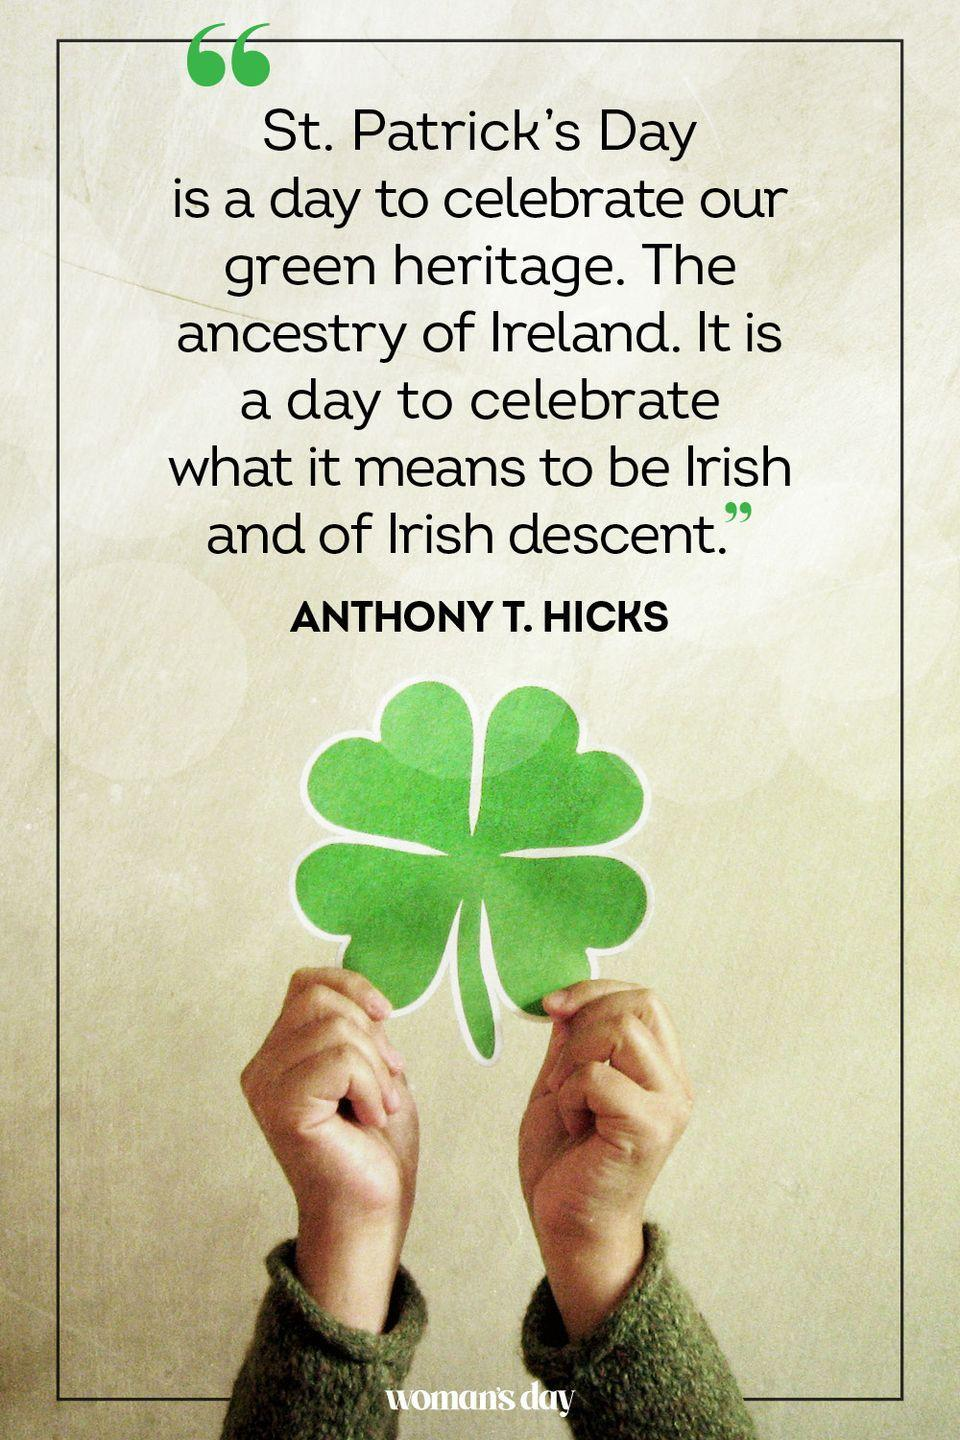 """<p>""""St. Patrick's Day is a day to celebrate our green heritage. The ancestry of Ireland. It is a day to celebrate what it means to be Irish and of Irish descent."""" — Anthony T. Hicks</p>"""